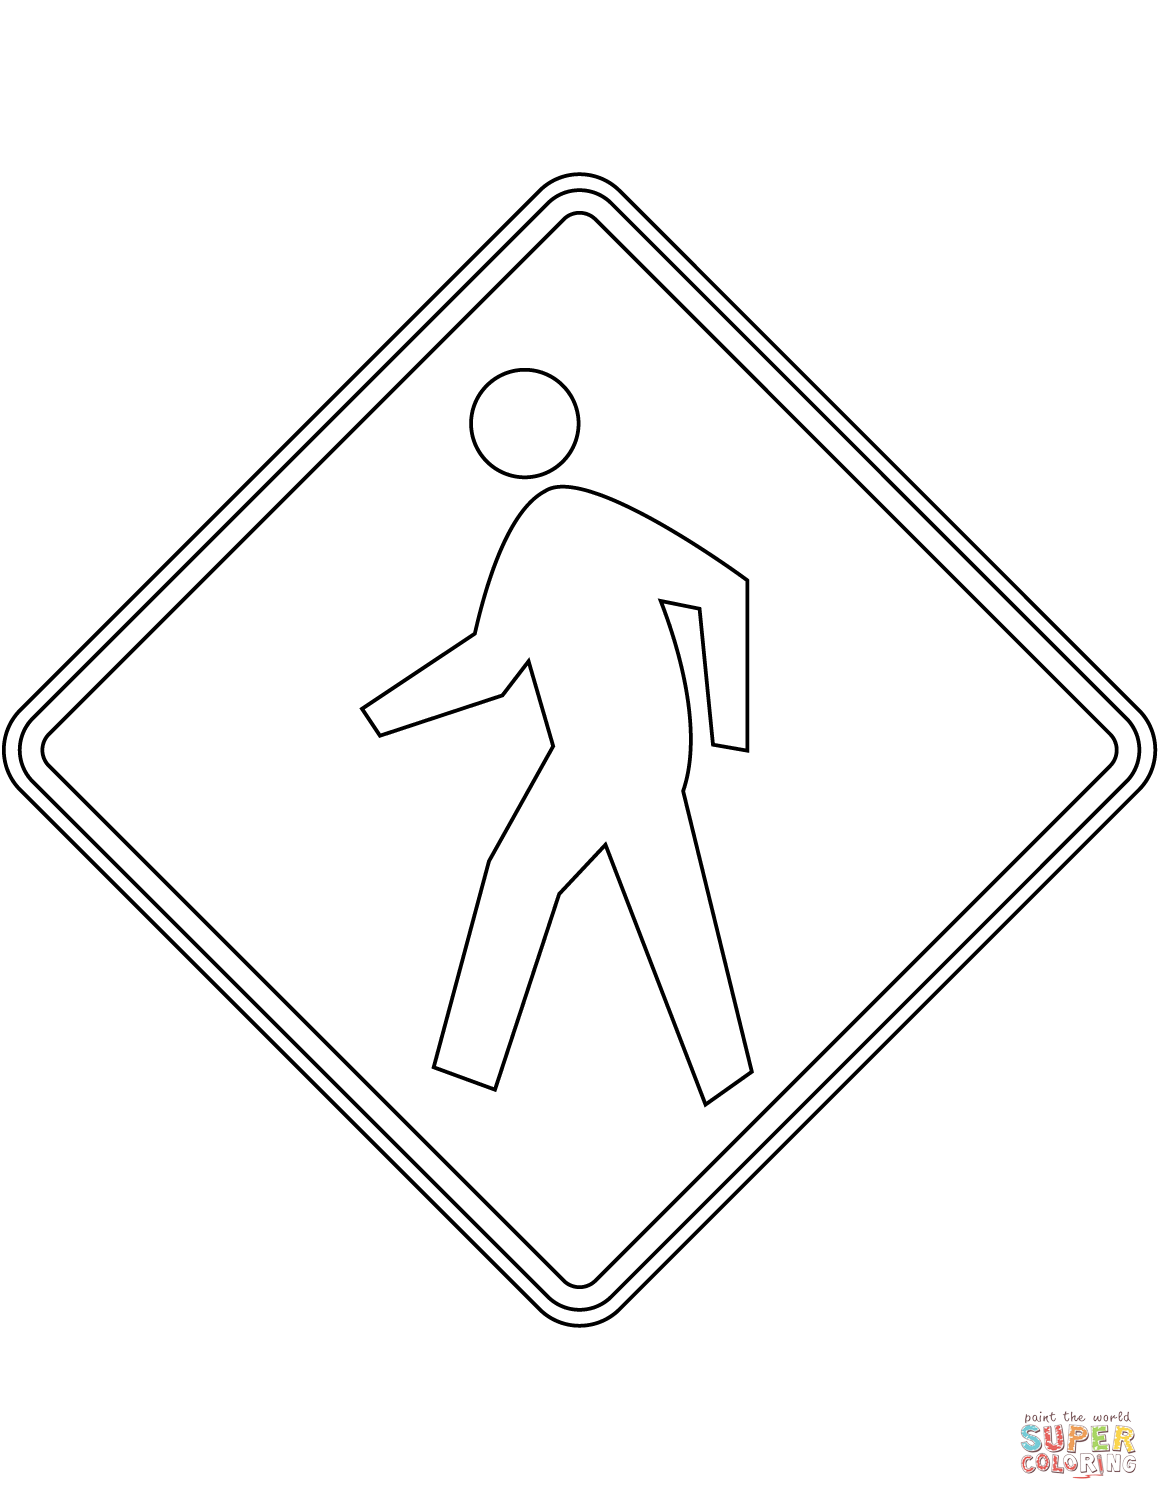 Pedestrian Crossing Sign In The Usa Coloring Page